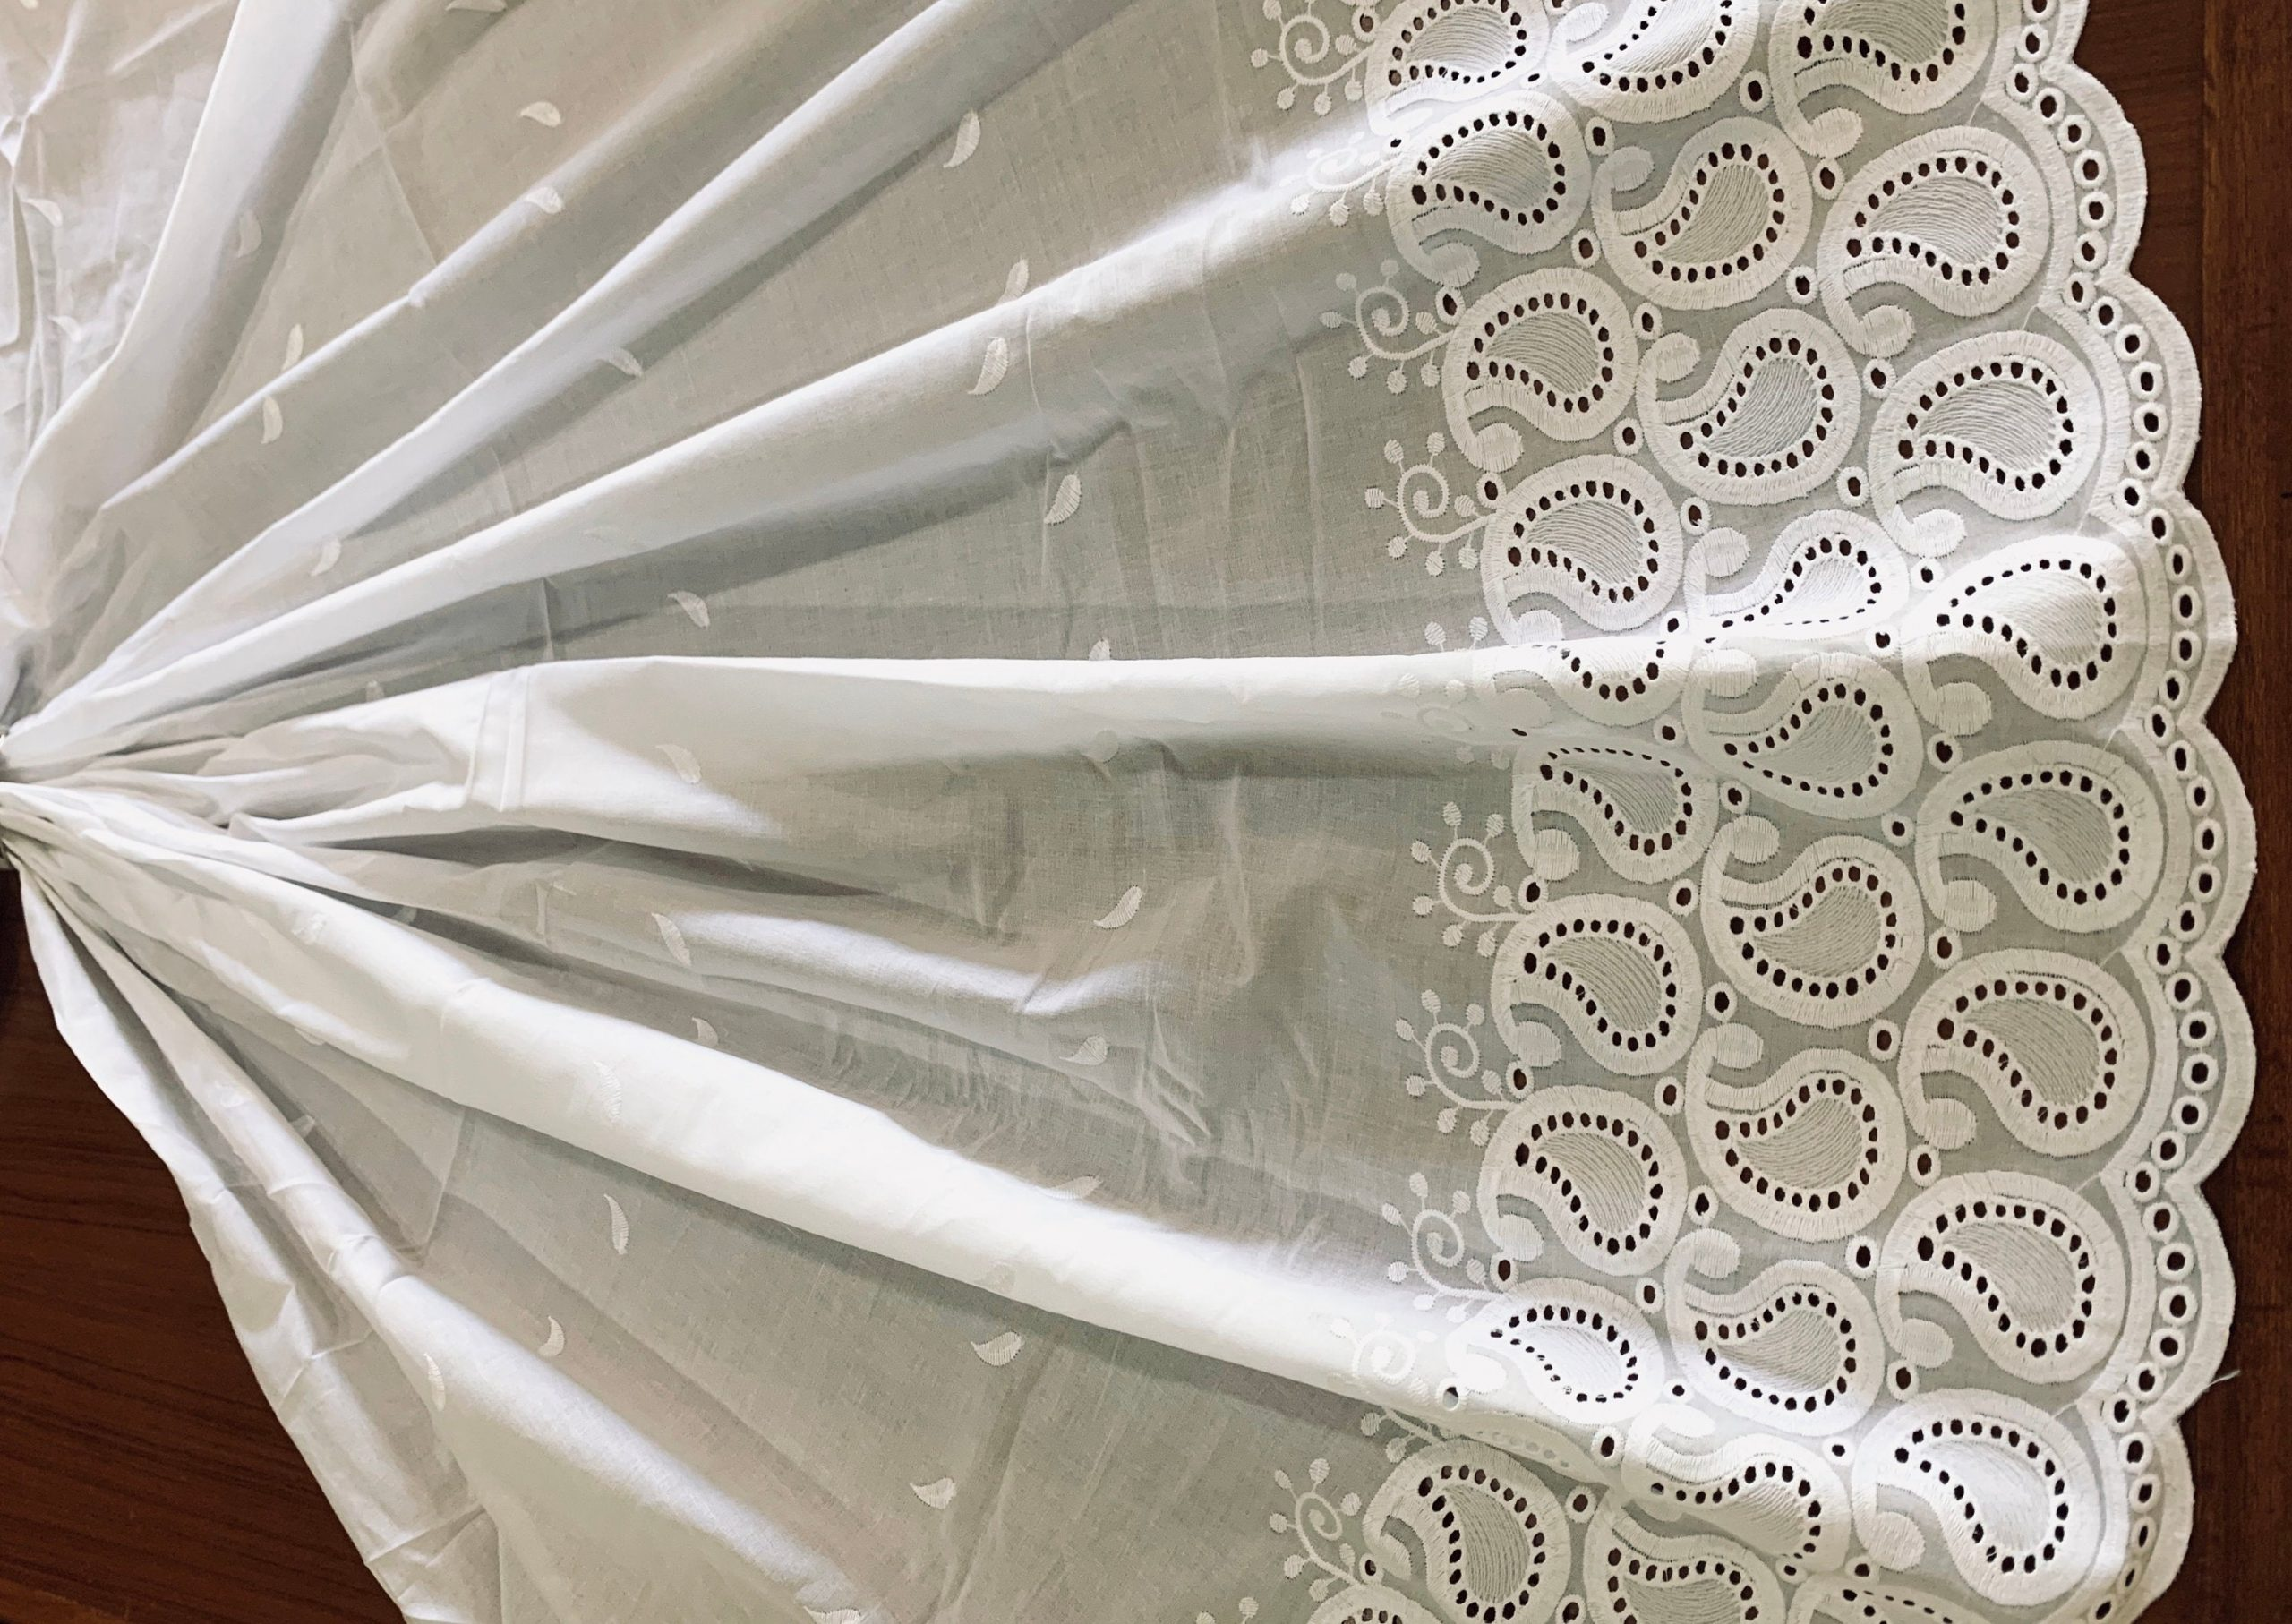 Embroidered Terry Cotton Fabric, White Lace Trim Scallop Edge Material, Traditional Dress Shawl Saree Scarf Zari Veil, Fashion Sewing Fabric